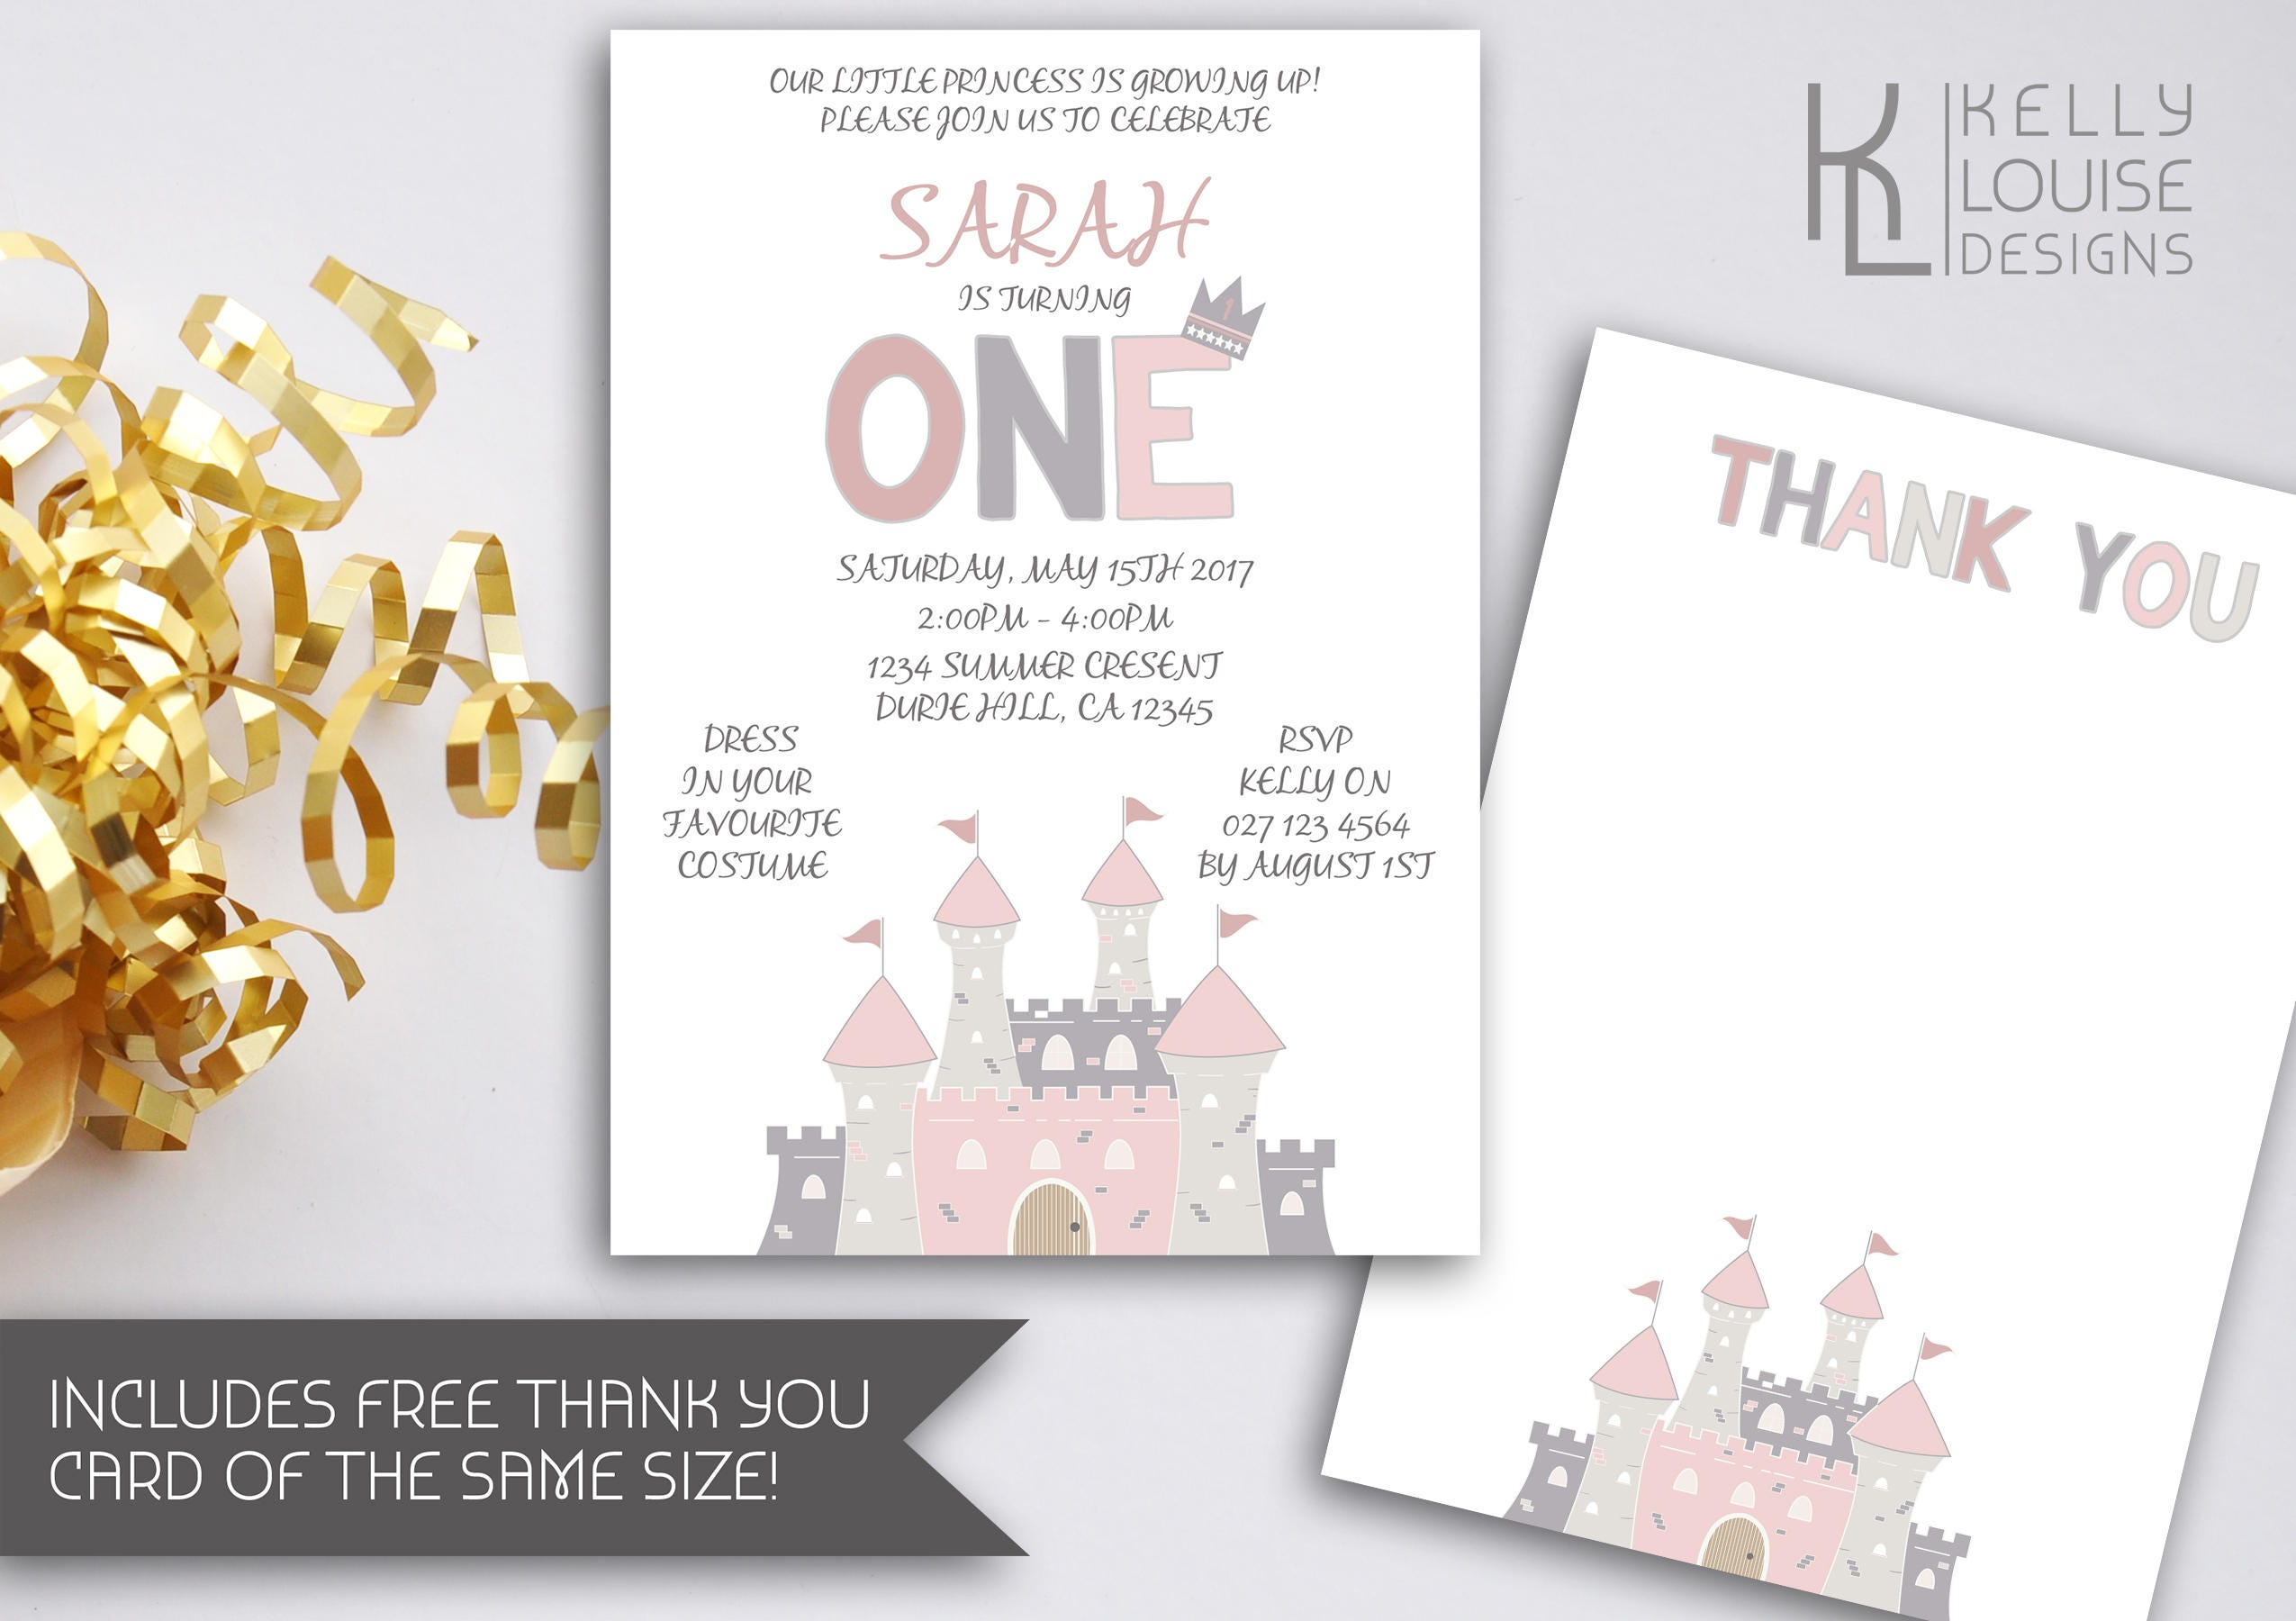 Princess birthday invitation castle birthday invitation princess princess birthday invitation castle birthday invitation princess digital invitation costume party dress up printable invites 046 stopboris Choice Image